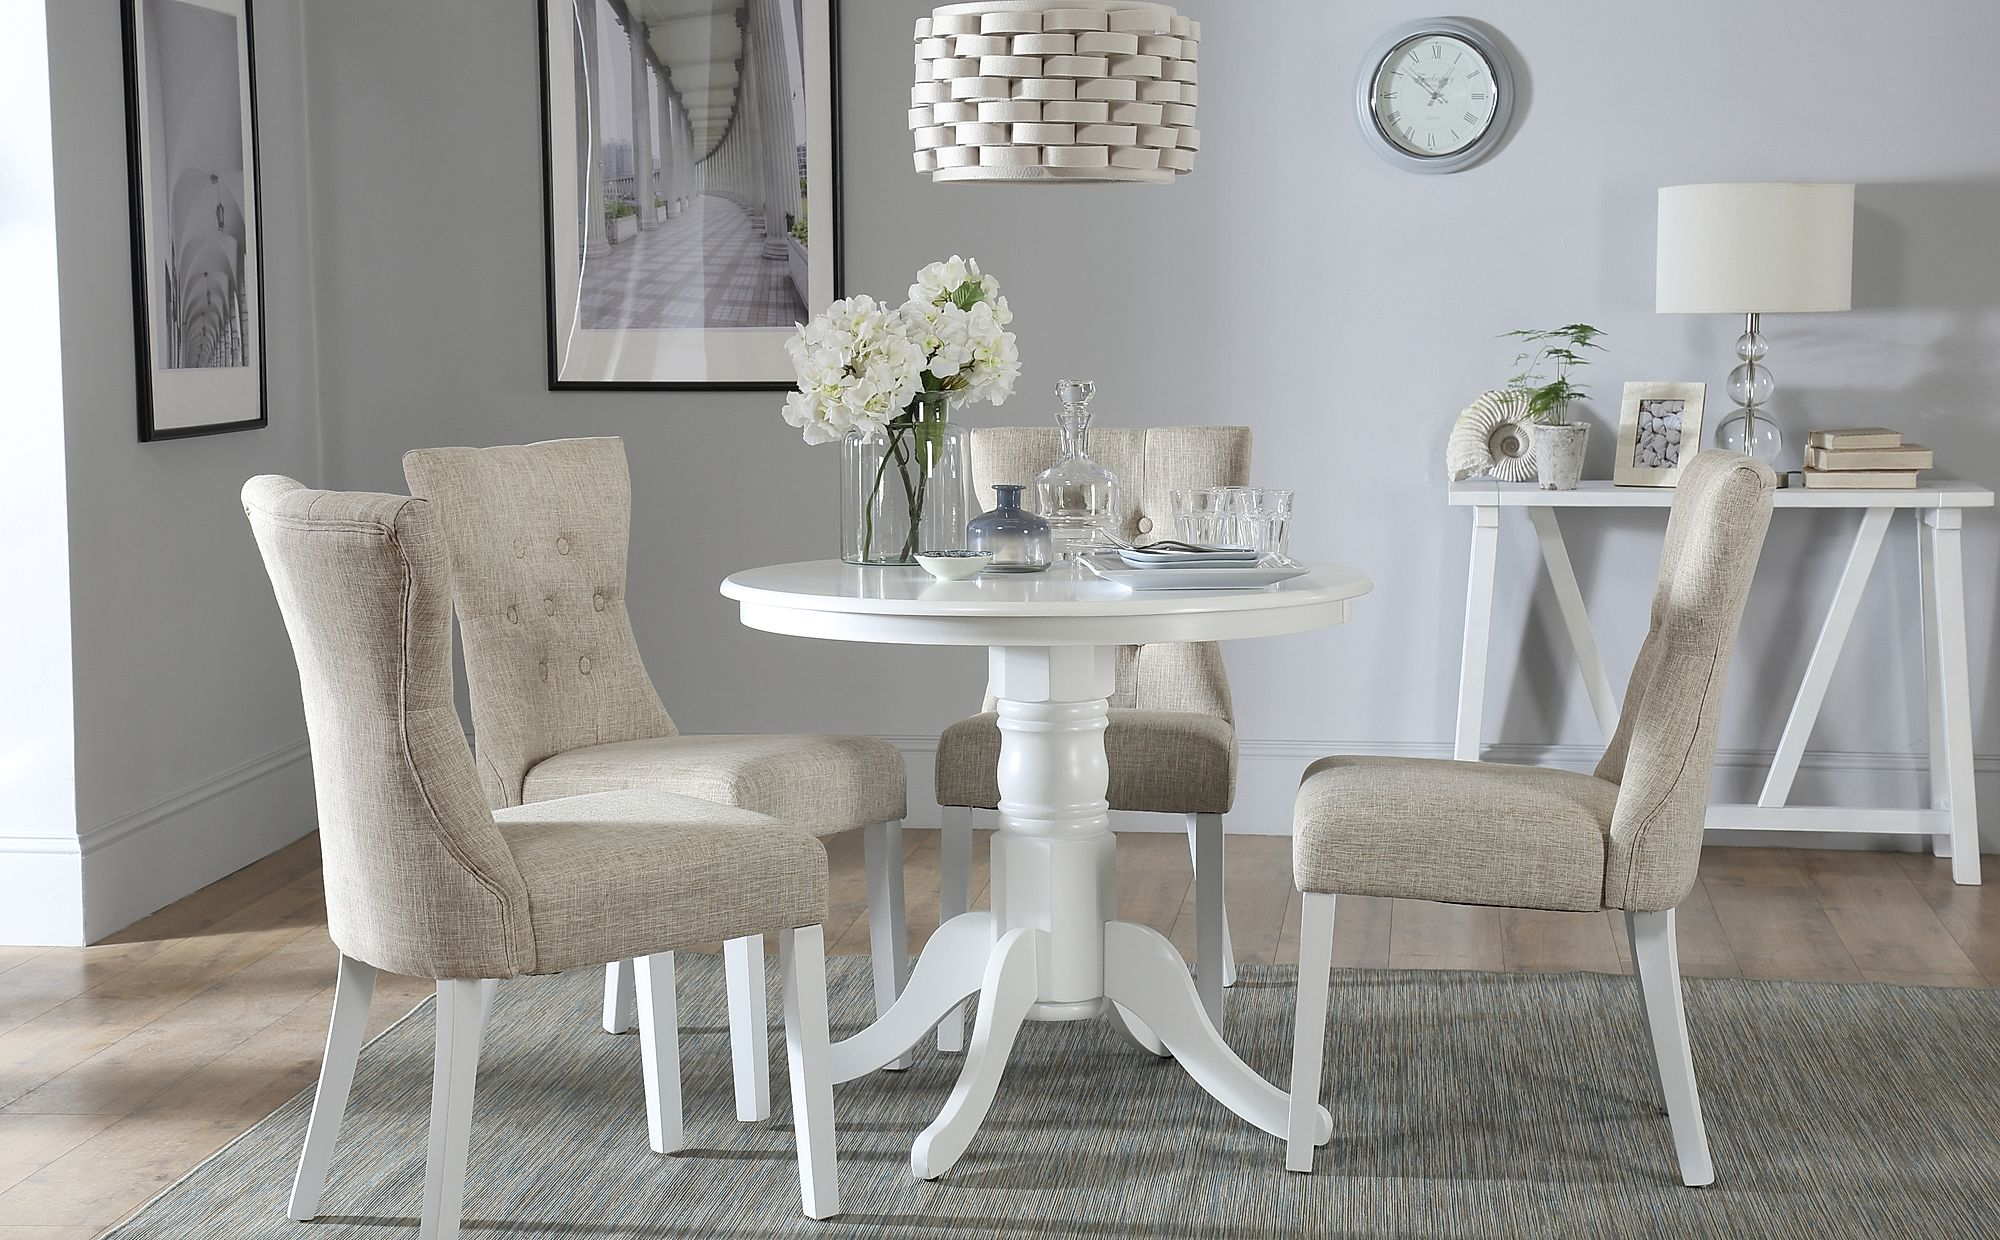 competitive price c2f0f 21848 Kingston Round White Dining Table - with 4 Bewley Oatmeal Chairs